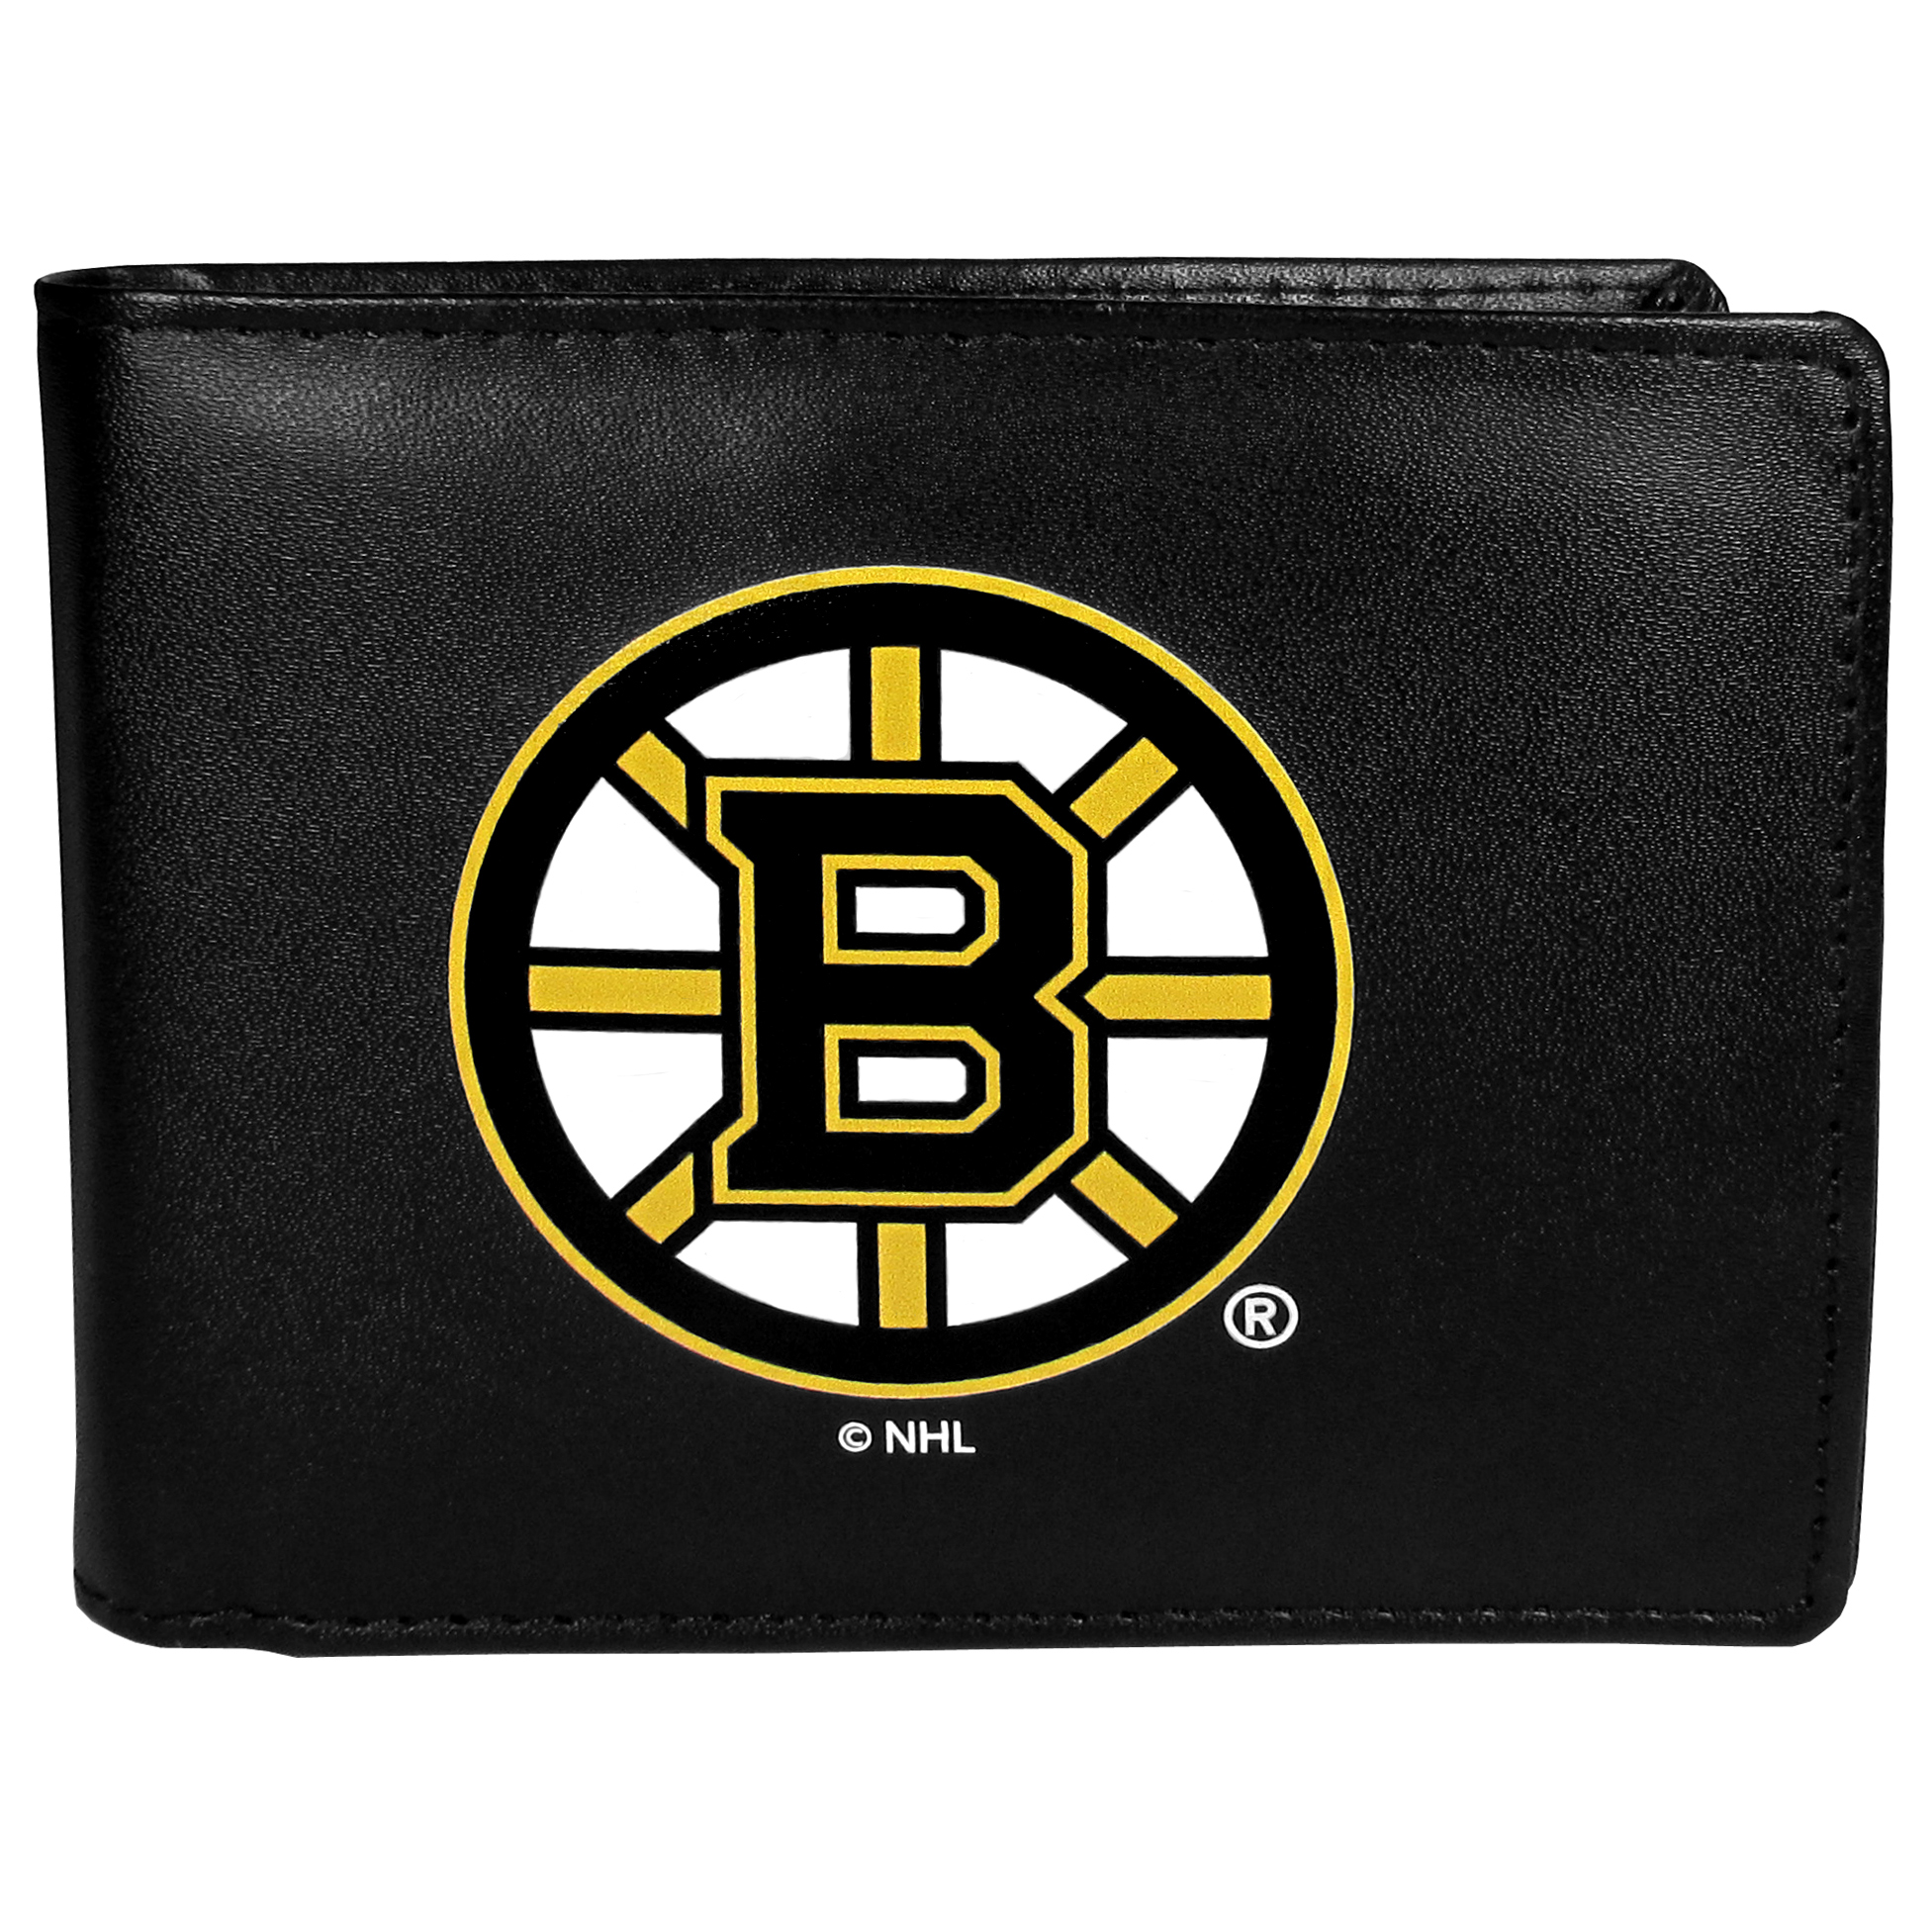 Boston Bruins Bi-fold Wallet Large Logo - Sports fans do not have to sacrifice style with this classic bi-fold wallet that sports the Boston Bruins?extra large logo. This men's fashion accessory has a leather grain look and expert craftmanship for a quality wallet at a great price. The wallet features inner credit card slots, windowed ID slot and a large billfold pocket. The front of the wallet features a printed team logo.